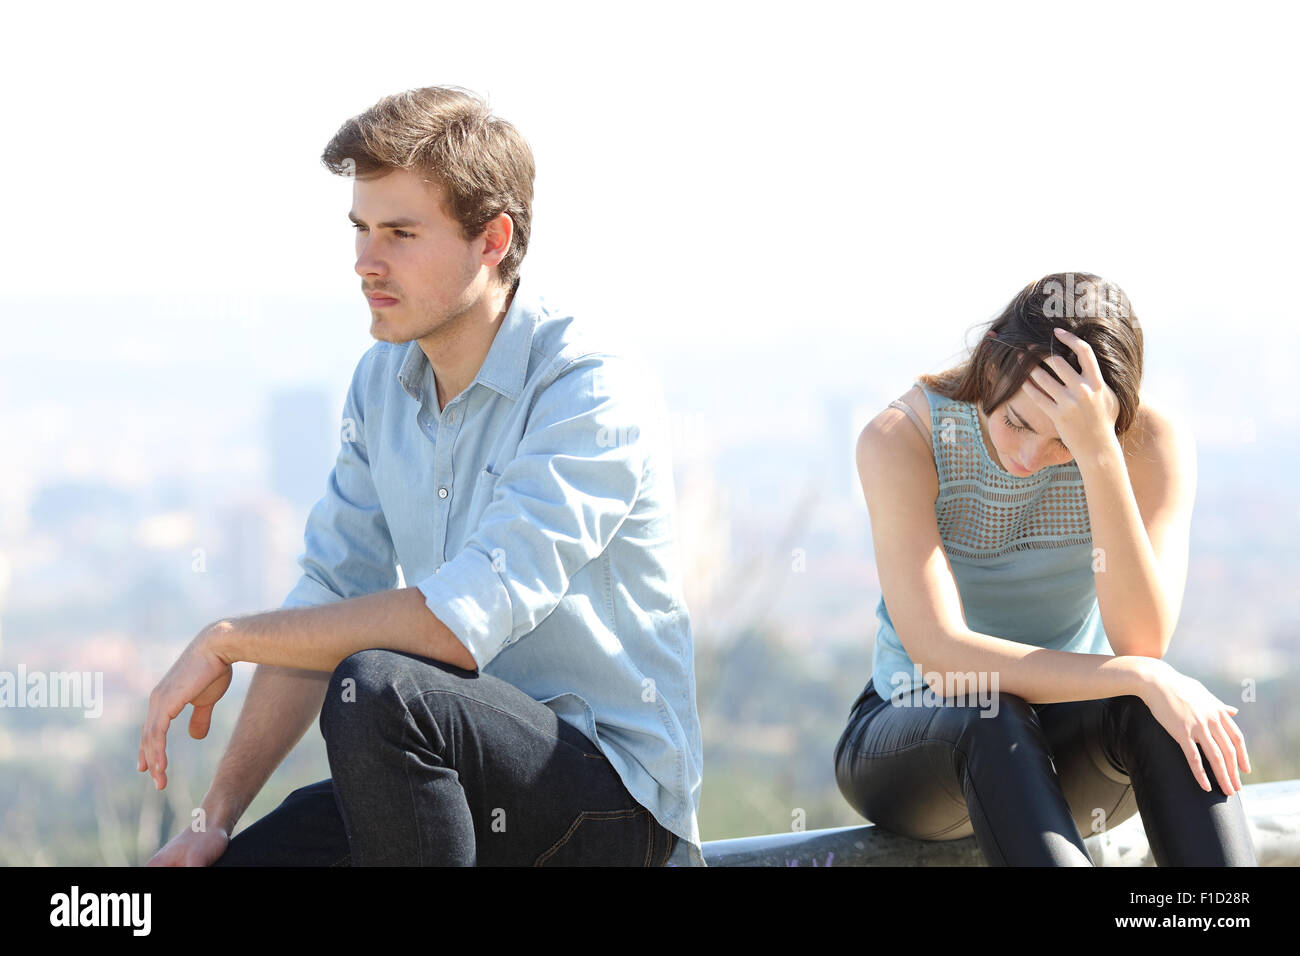 Bad boy arguing with his couple breakup concept with the city in the background - Stock Image